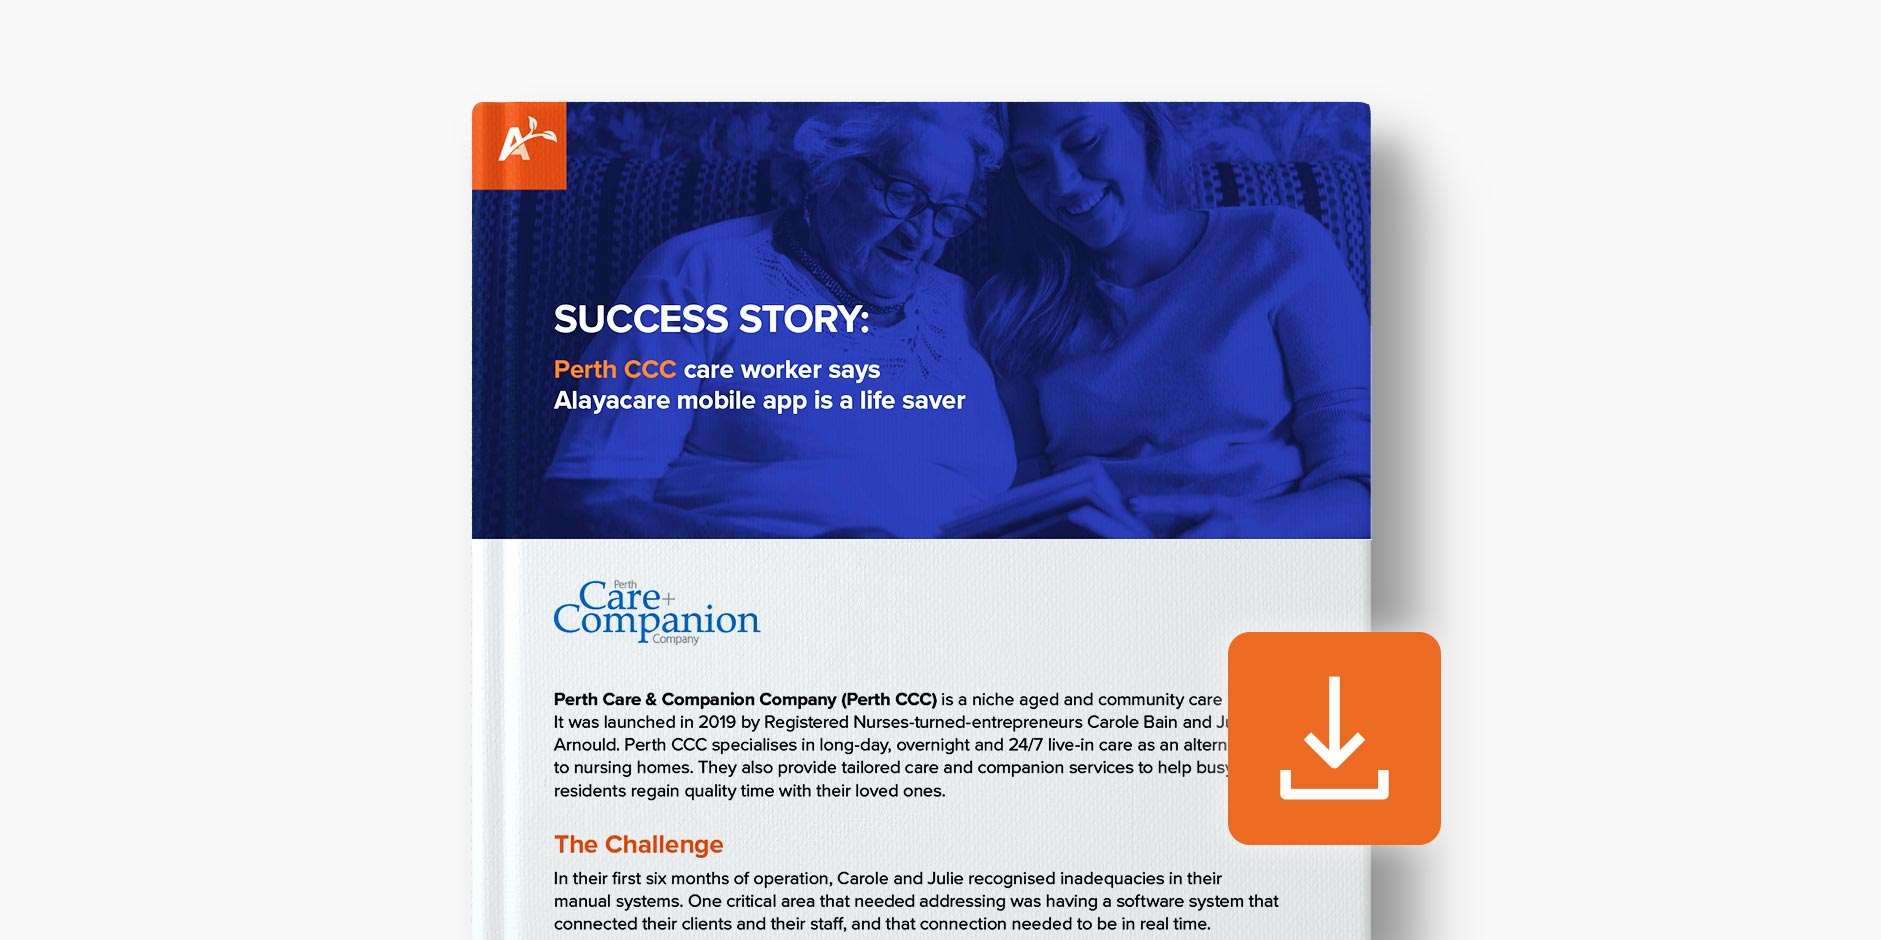 AlayaCare_ANZ_Case_Study__Perth_CCC_Care_Worker_v3_